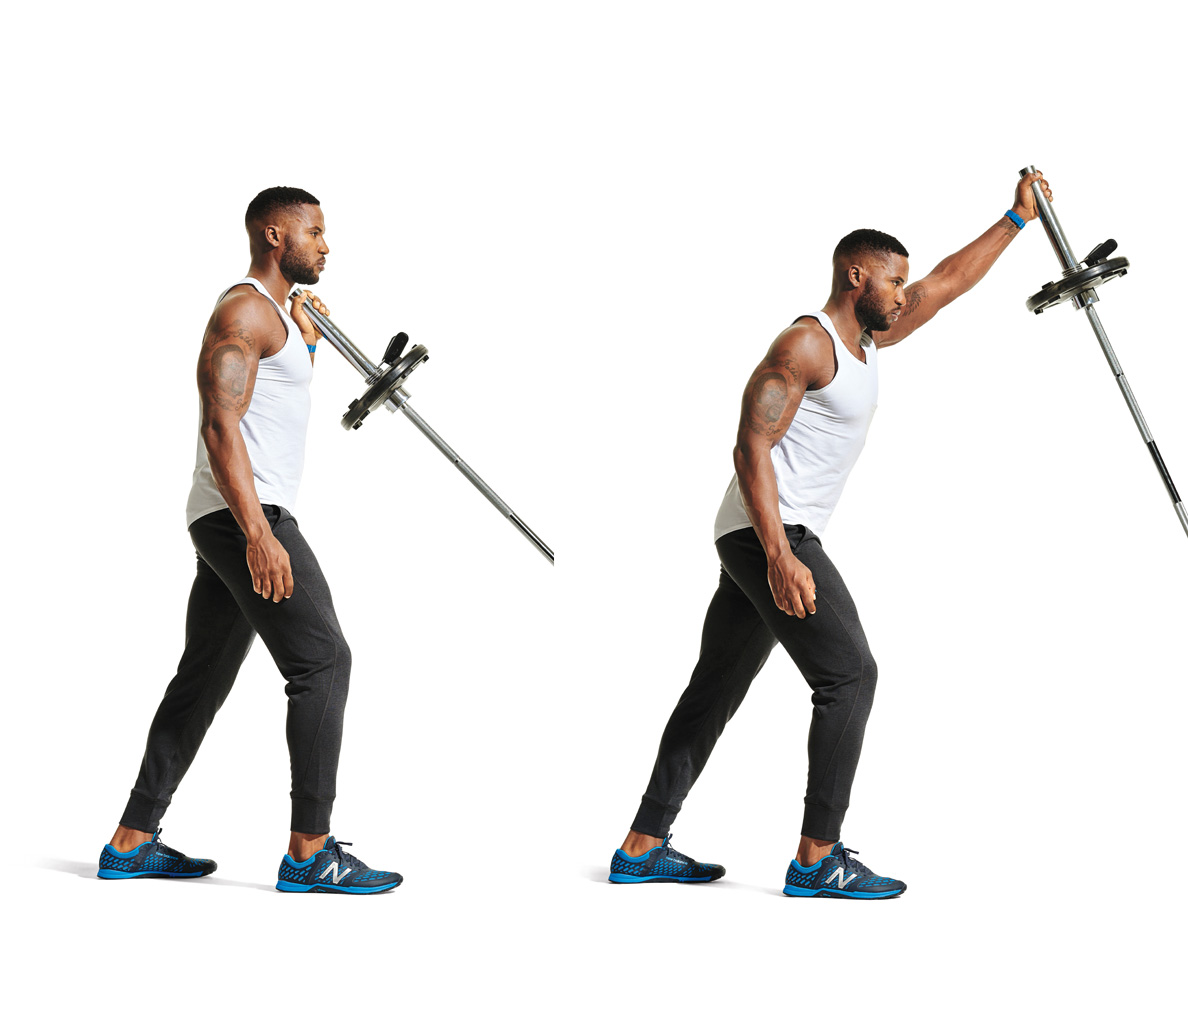 The 8 best chest exercises that don't require a bench